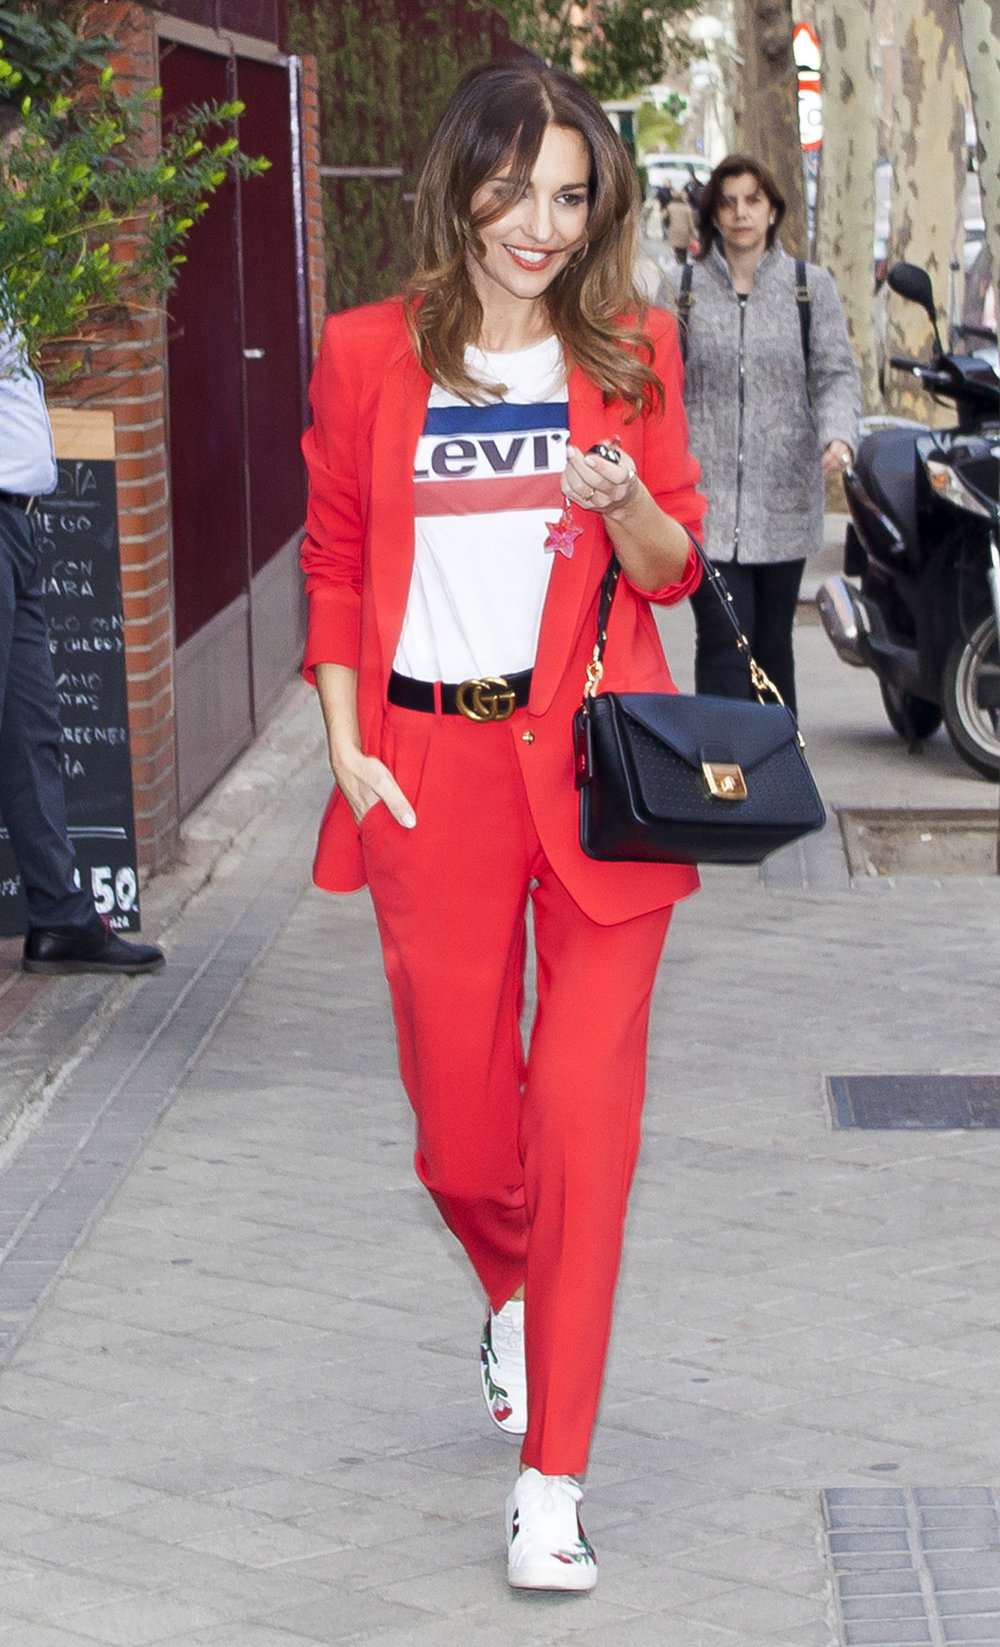 Friday Fits The Best Celebrity Fashion Of Week Rudyk Torch Tunik Women Navy Misty L Gettyimages 921960370 Master